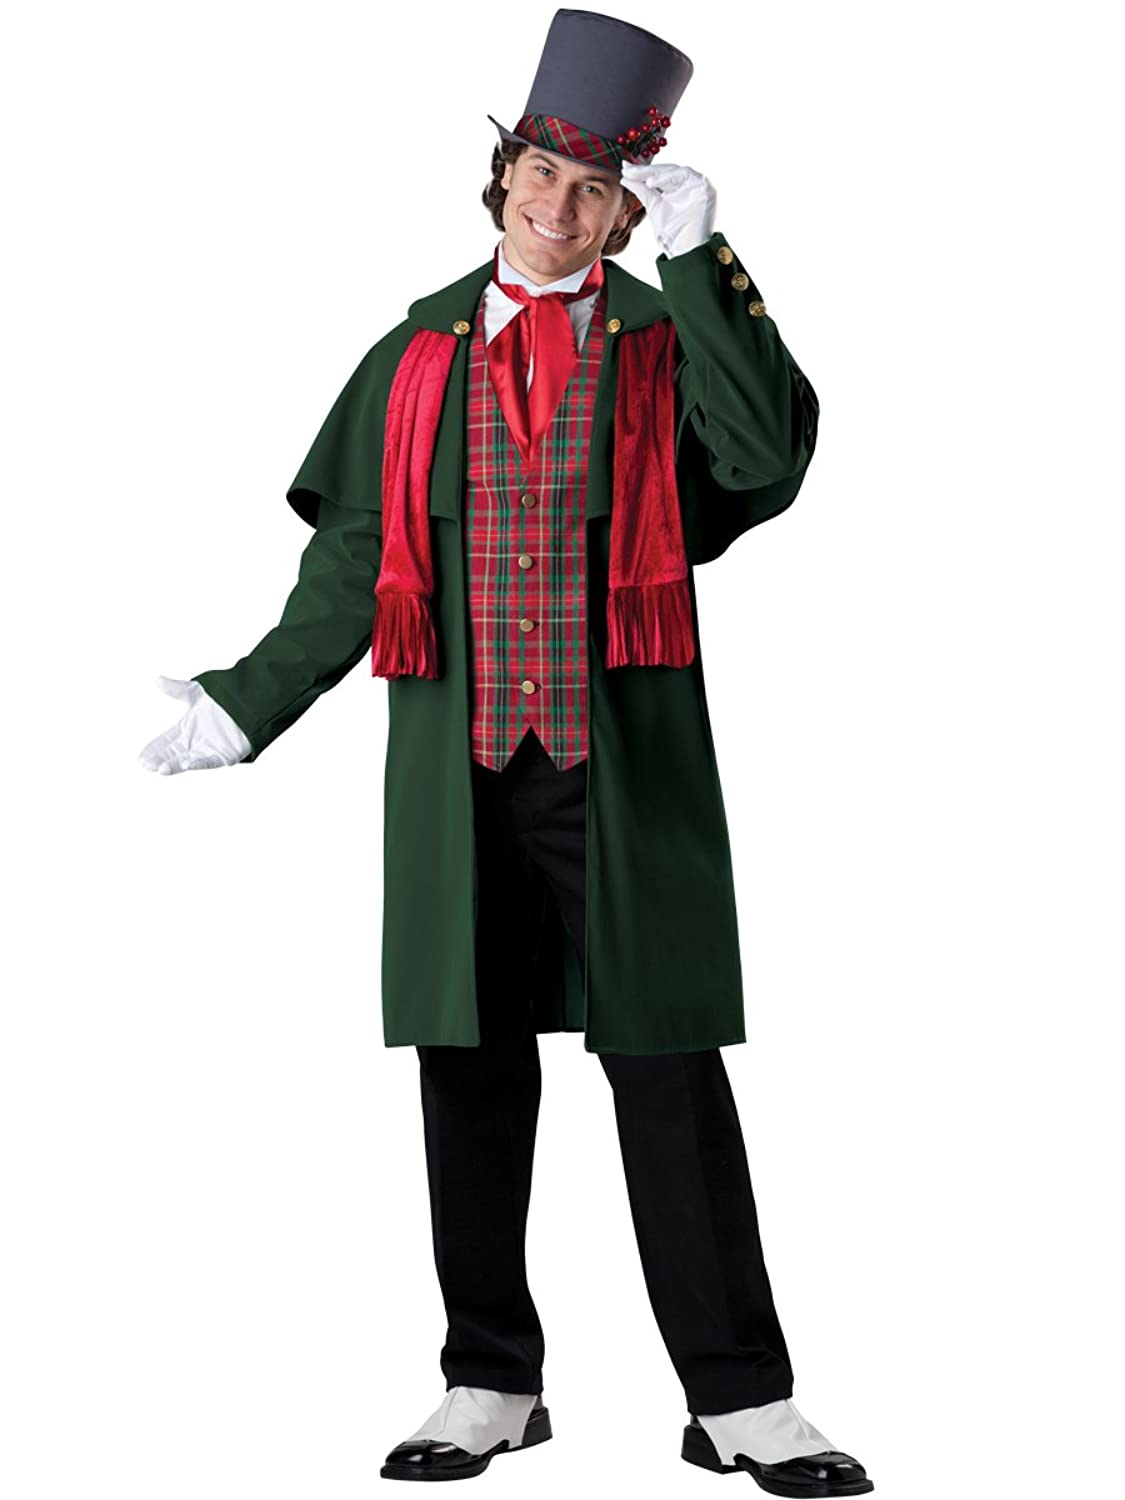 Victorian Men's Costumes: Mad Hatter, Rhet Butler, Willy Wonka  Mens Yuletide Gent Christmas Costume  AT vintagedancer.com